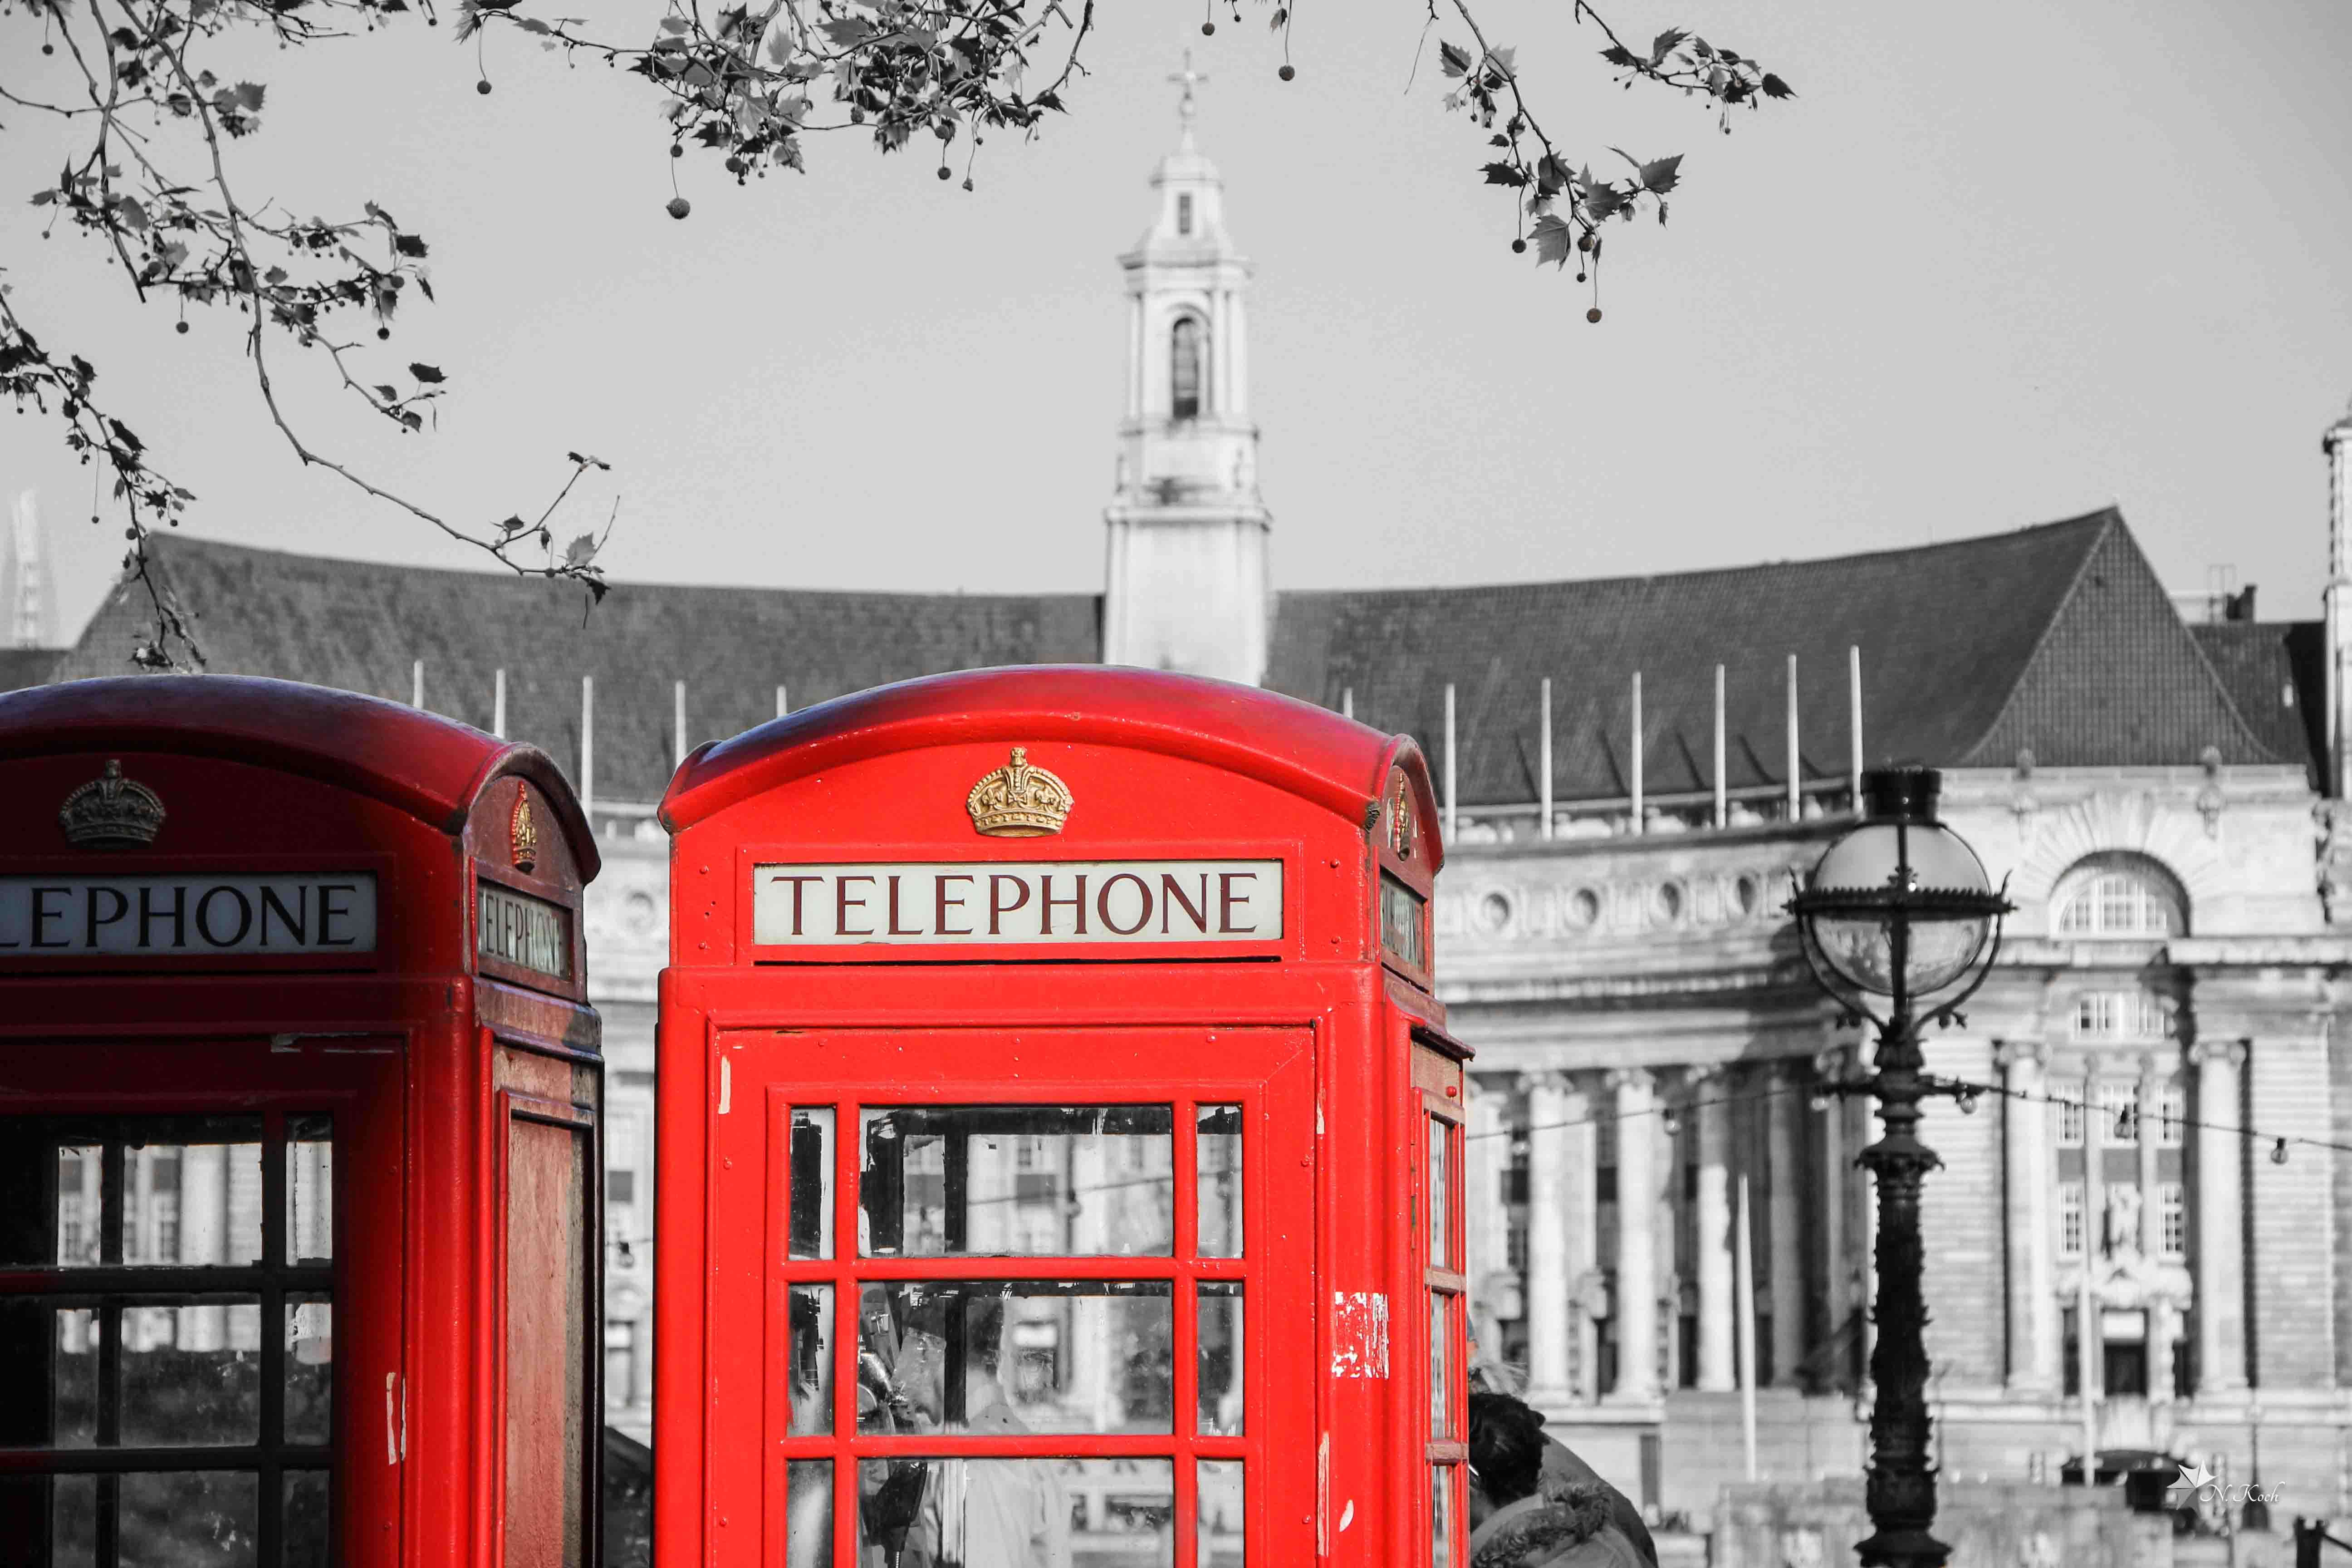 2014, London | Red telephone box in London's city